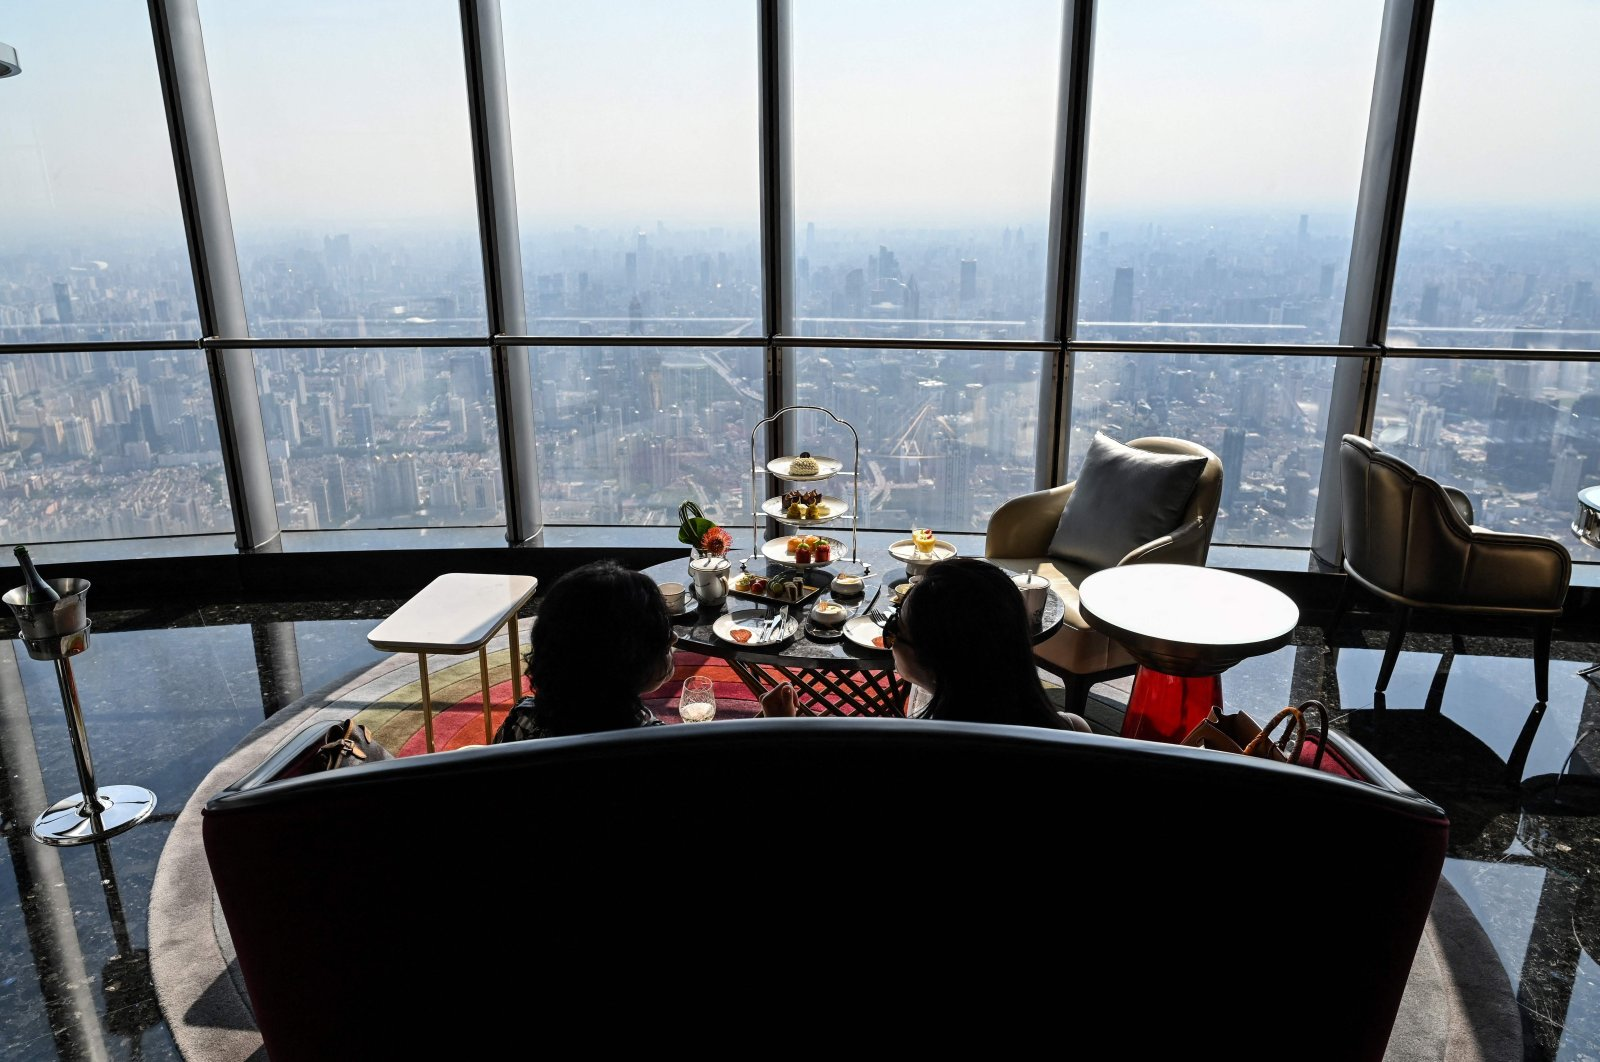 Guests are seen in the J Hotel, the world's highest luxury hotel, located in the Shanghai Tower, Shanghai, China, June 23, 2021. (AFP Photo)